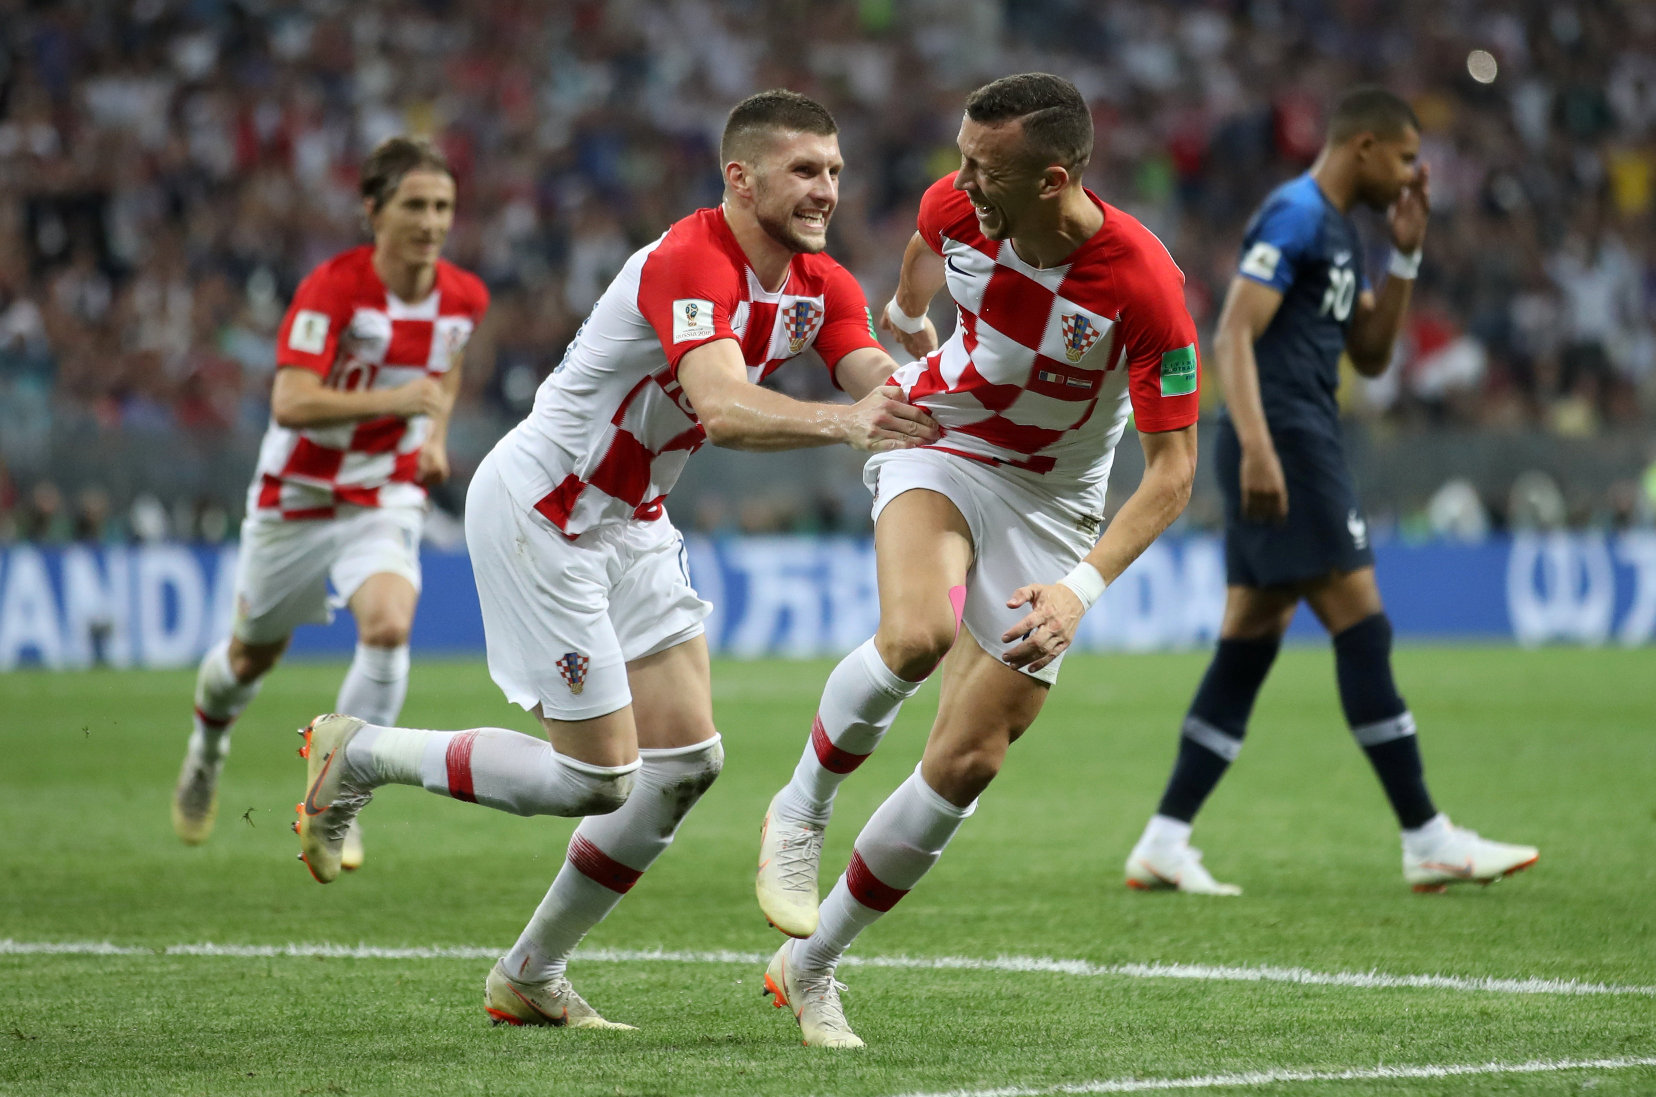 Soccer Football - World Cup - Final - France v Croatia - Luzhniki Stadium, Moscow, Russia - July 15, 2018  Croatia's Ivan Perisic celebrates scoring their first goal with Ante Rebic    REUTERS/Carl Recine